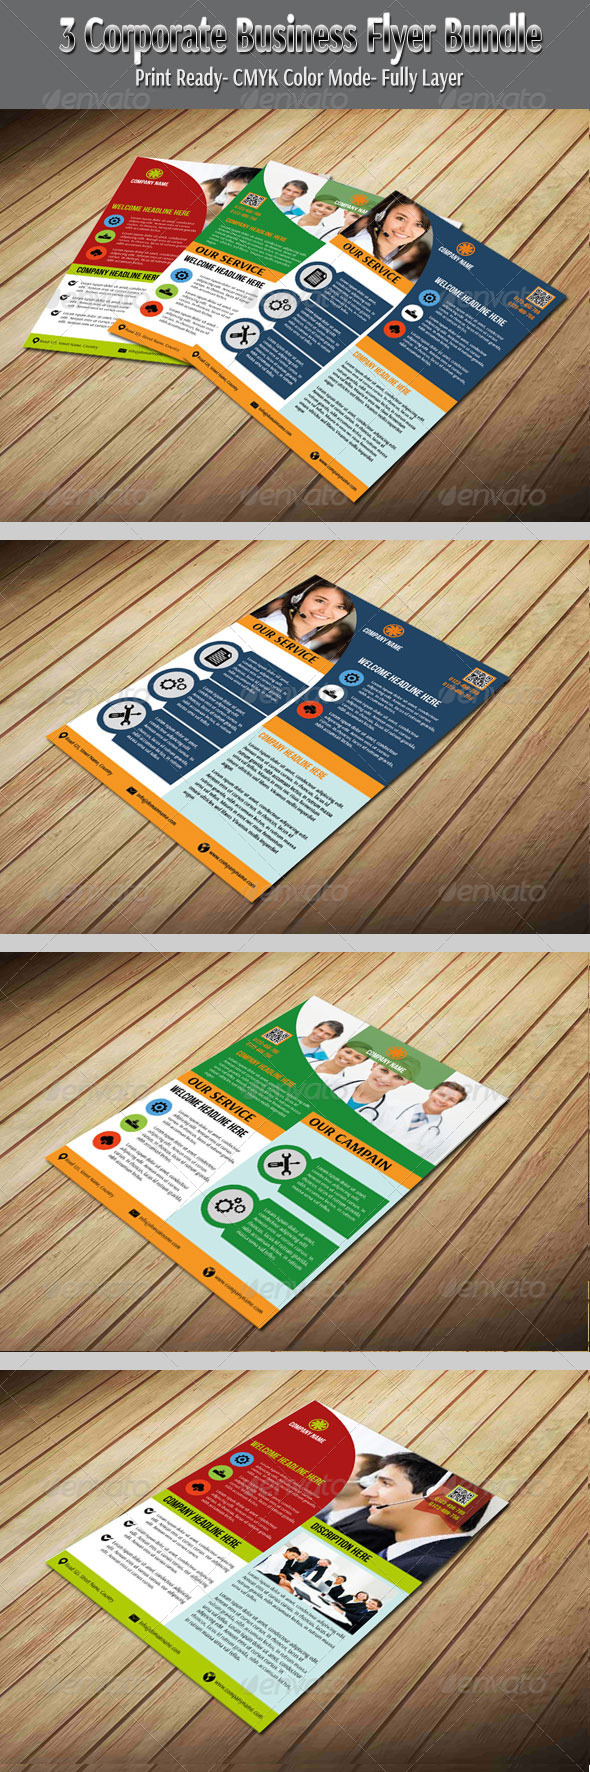 GraphicRiver 3 Corporate Business Flyer Bundle 6429231